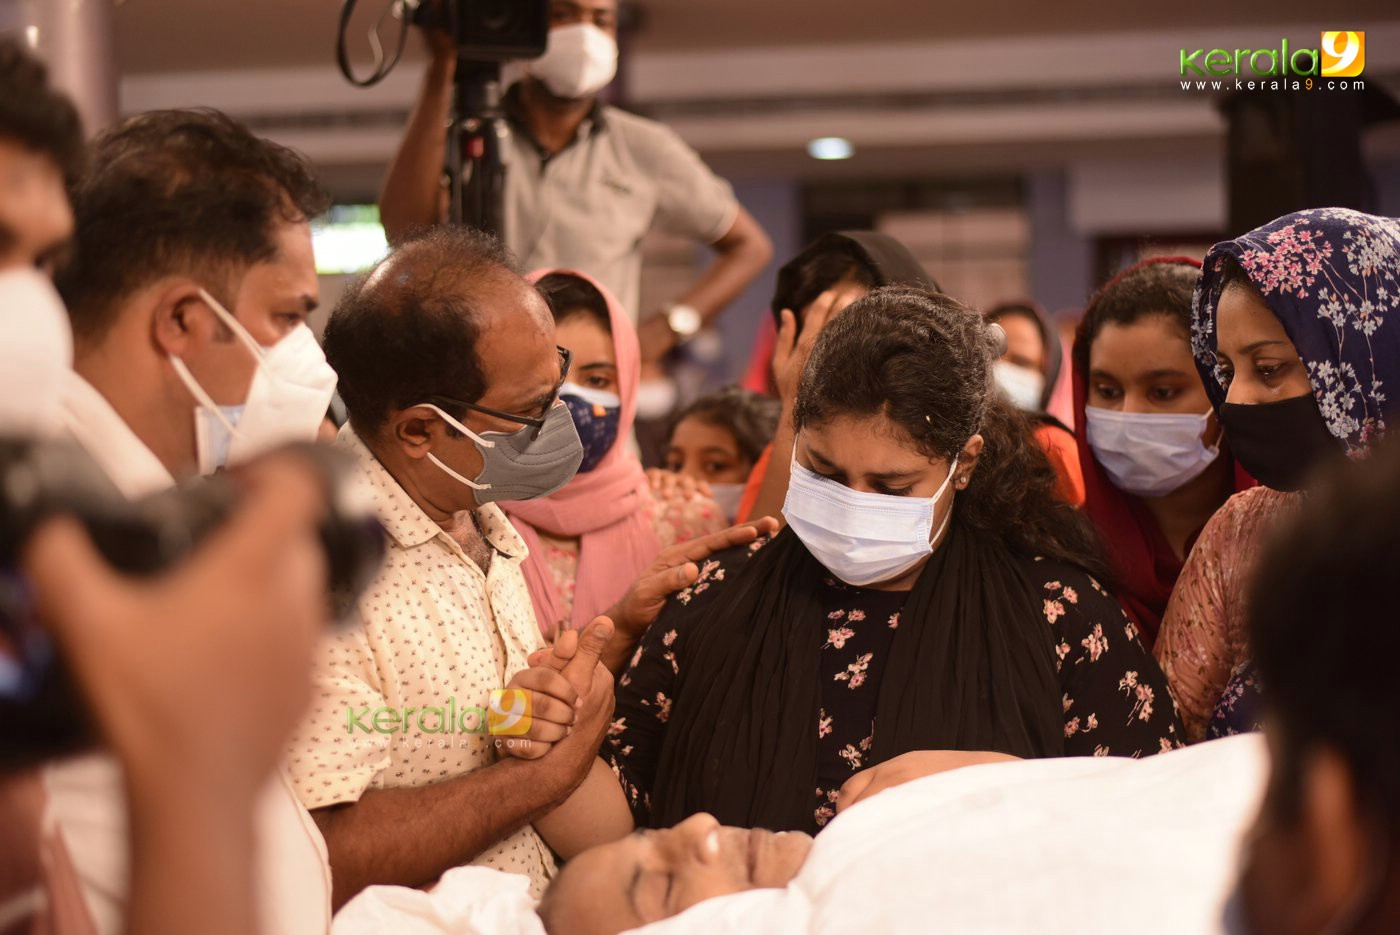 Chef Naushad Funeral daughter Performed the final rituals photos